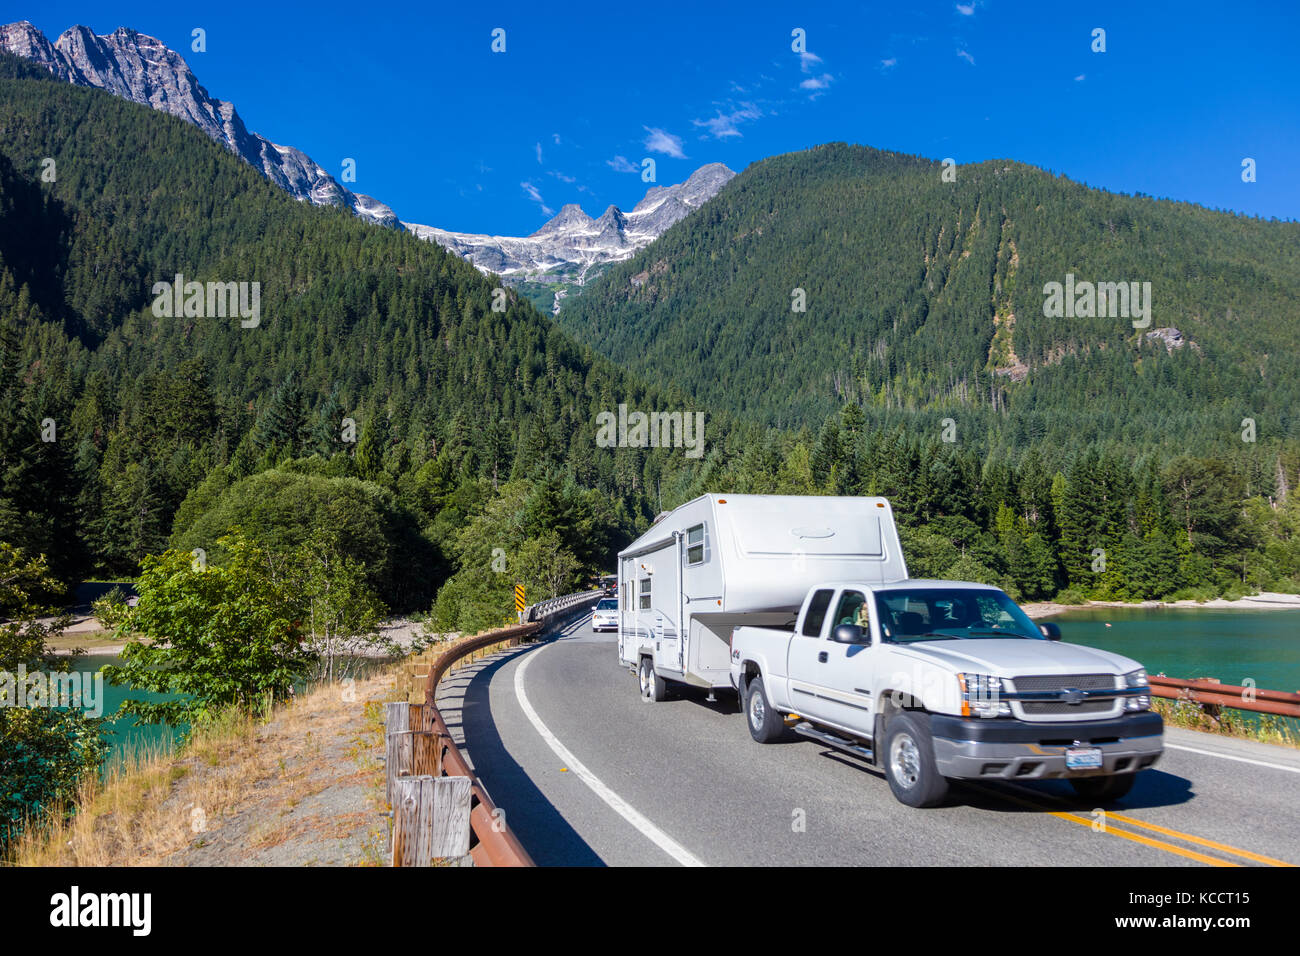 Truck with camping trailer on North Cascades Highway Route 20 in North Cascades National Park in Northwest Washington Stock Photo